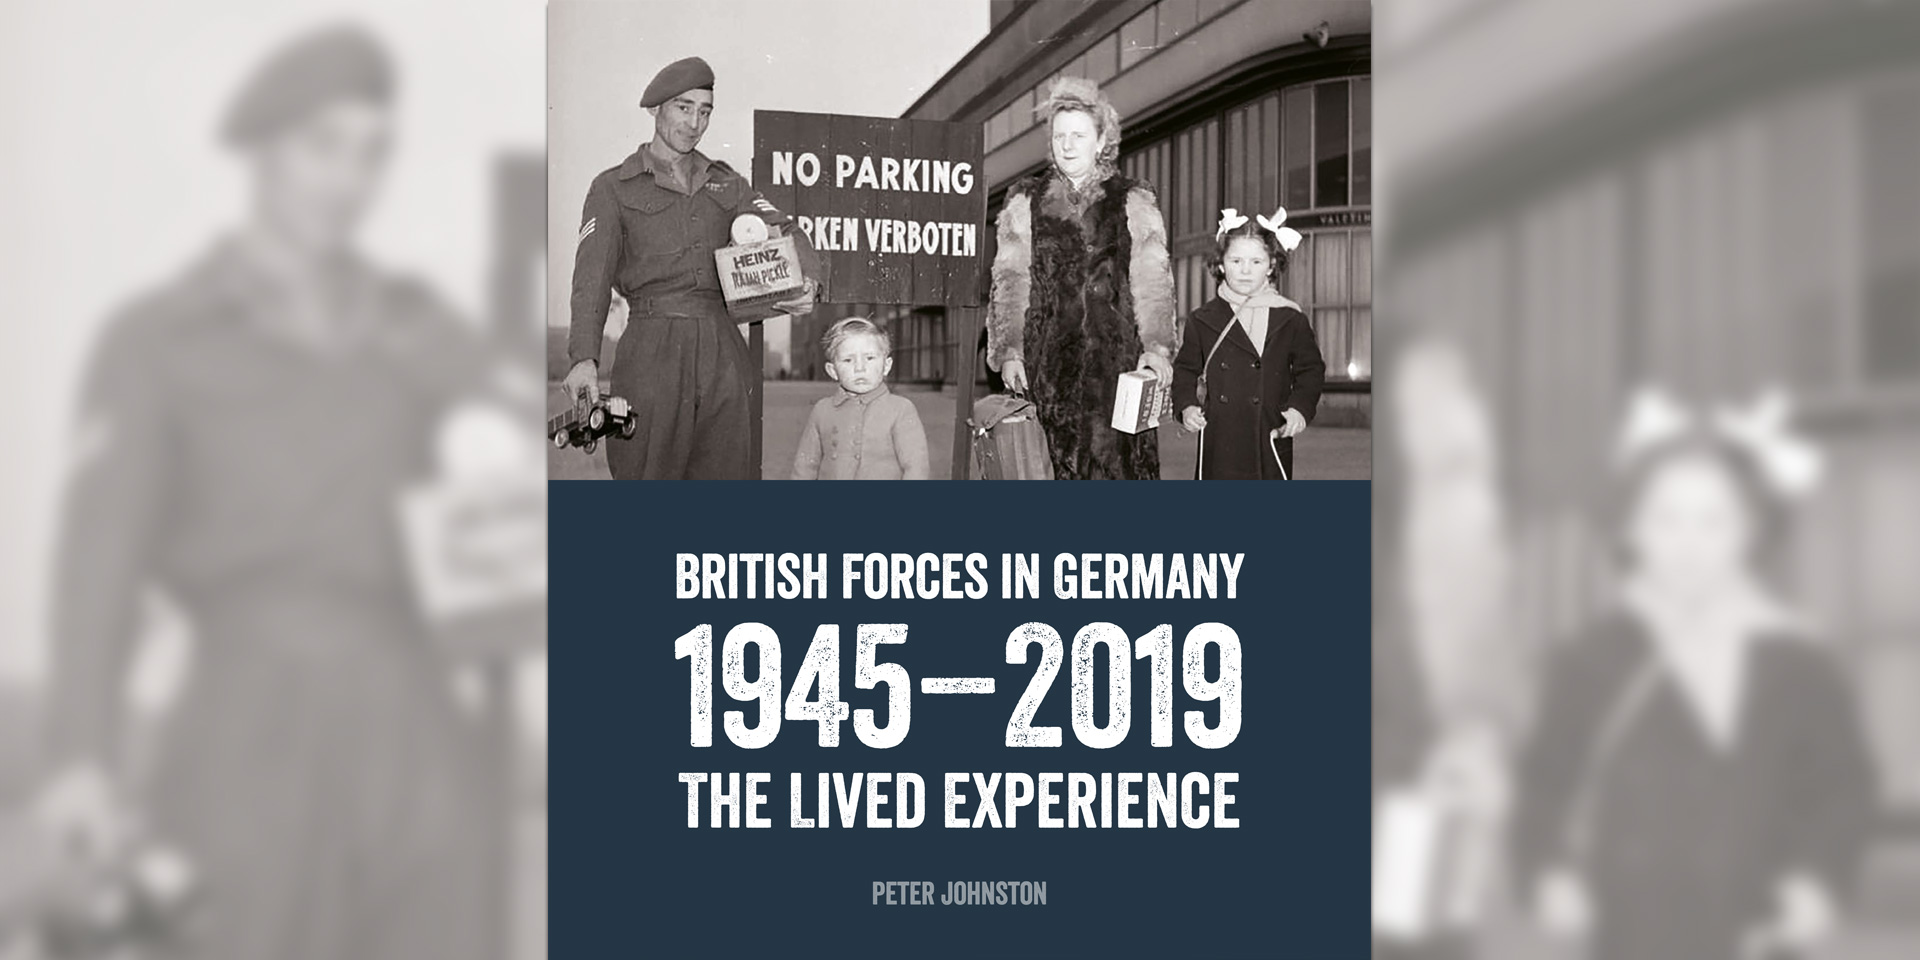 'British Forces in Germany: 1945-2019' book cover